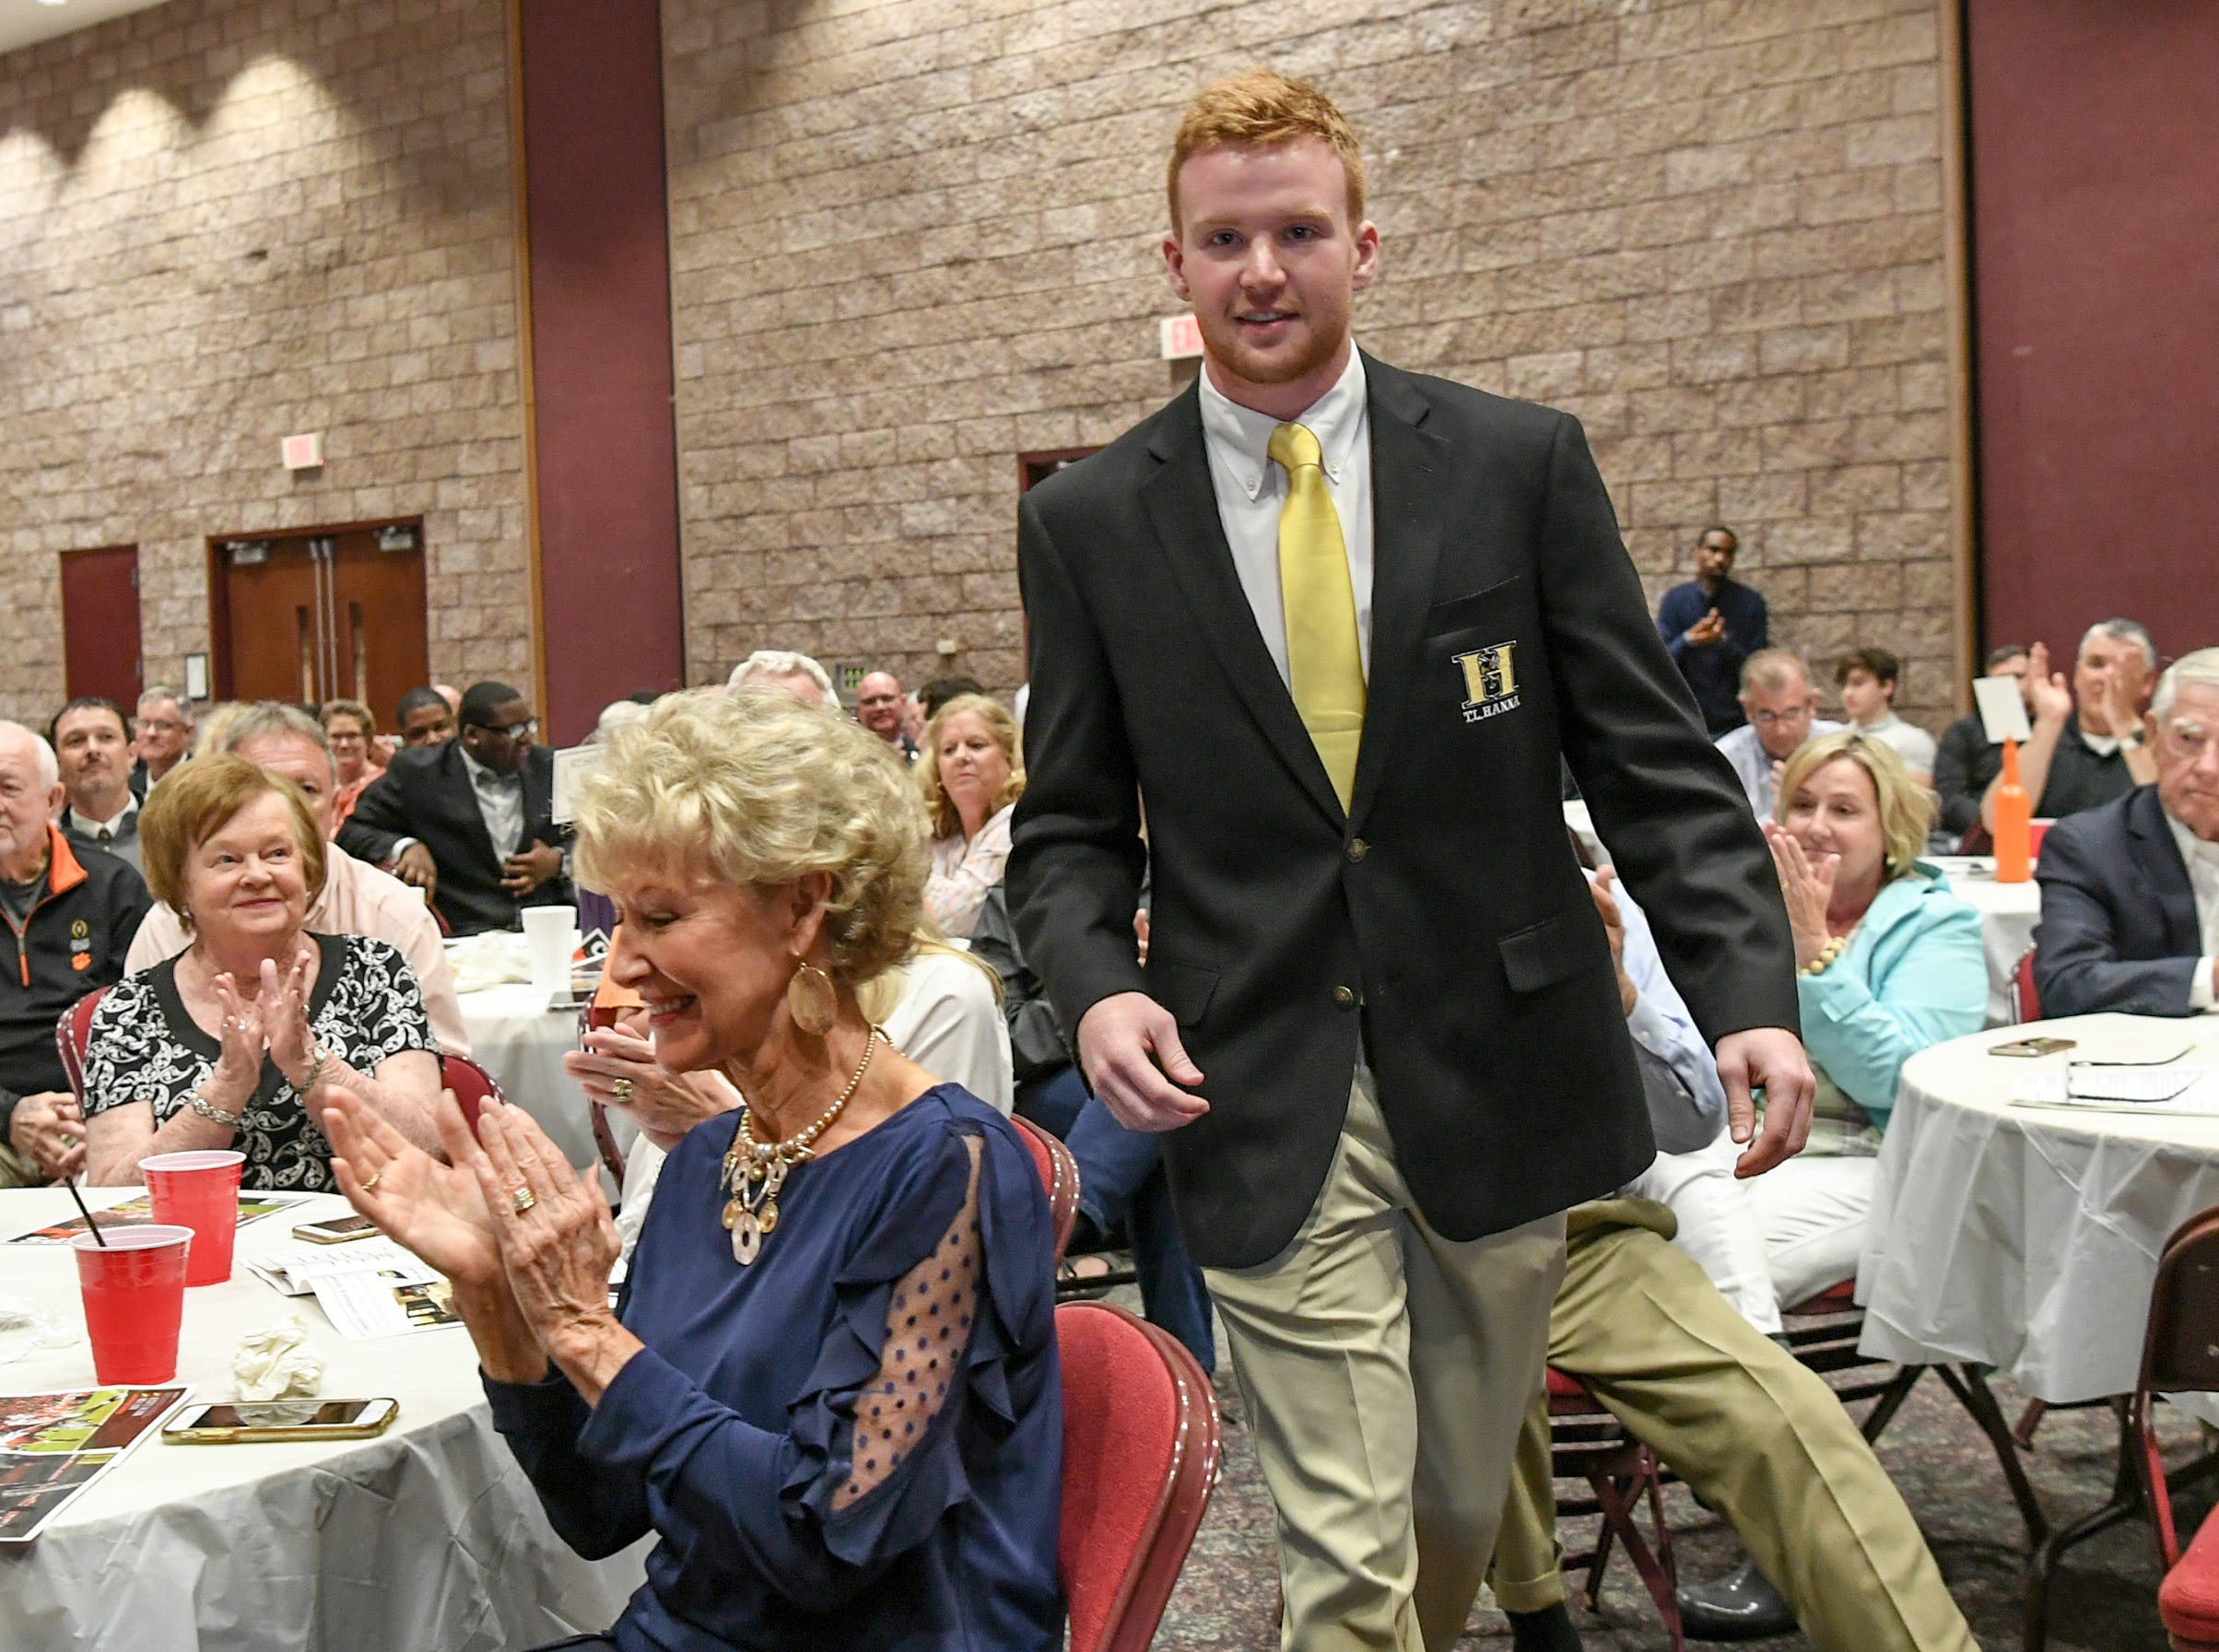 Alex Meredith, former T.L. Hanna High football player accepts the Scholarship Award from Dick Smith during the Anderson Area Touchdown Club Annual Awards Banquet at the Anderson County Civic Center Monday, April 8th, 2019. Awards were given to the Players of the Year and the Coach of the Year from the eight Anderson County high schools. The club honored former Belton-Honea Path player Kendall Joseph who was part of two National Championship Clemson football teams.